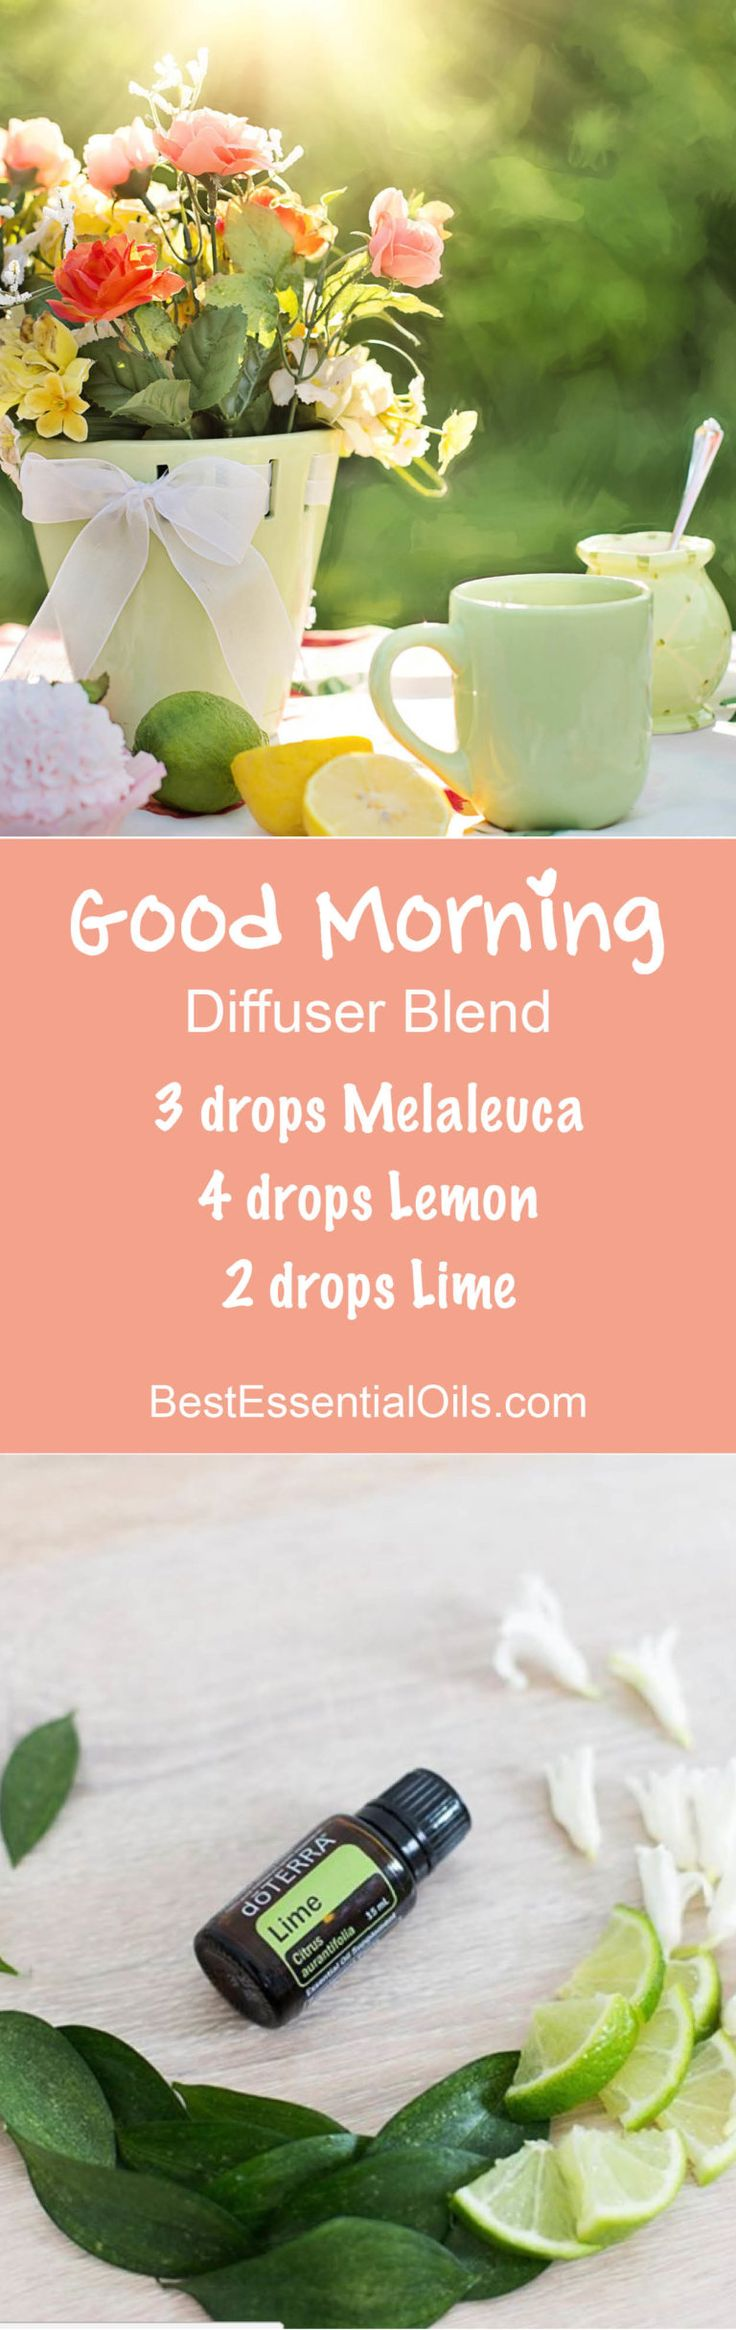 Good Morning Essential Oils Diffuser Blend ••• Buy dōTERRA essential oils online at www.mydoterra.com/suzysholar, or contact me suzy.sholar@gmail.com for more info.